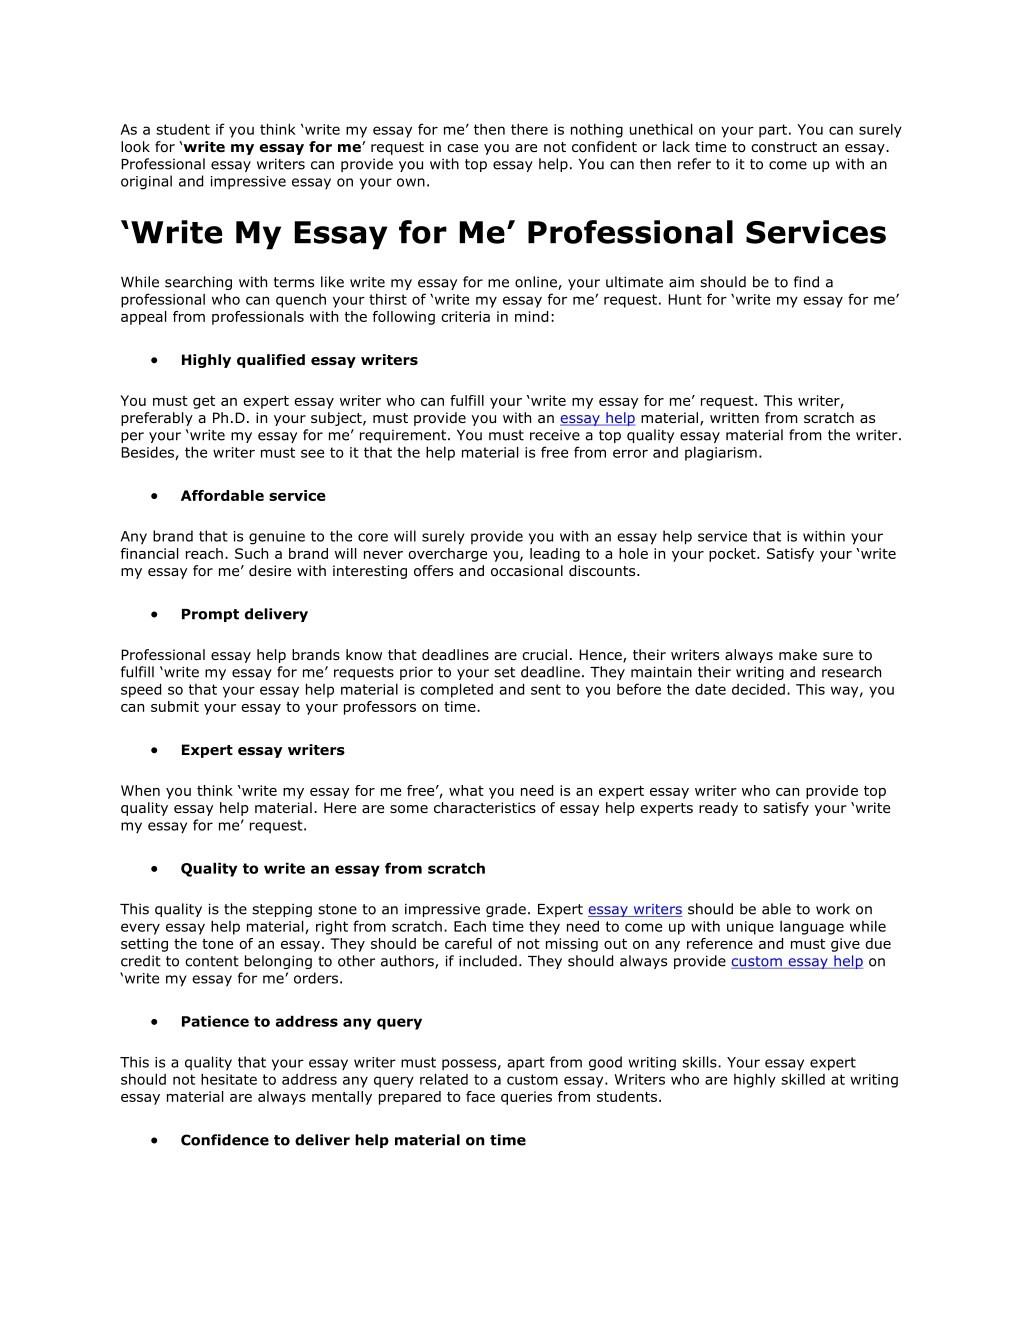 006 Essay Example Write For Me As Student If You Think My Amazing College Cheap Uk Discount Code Large